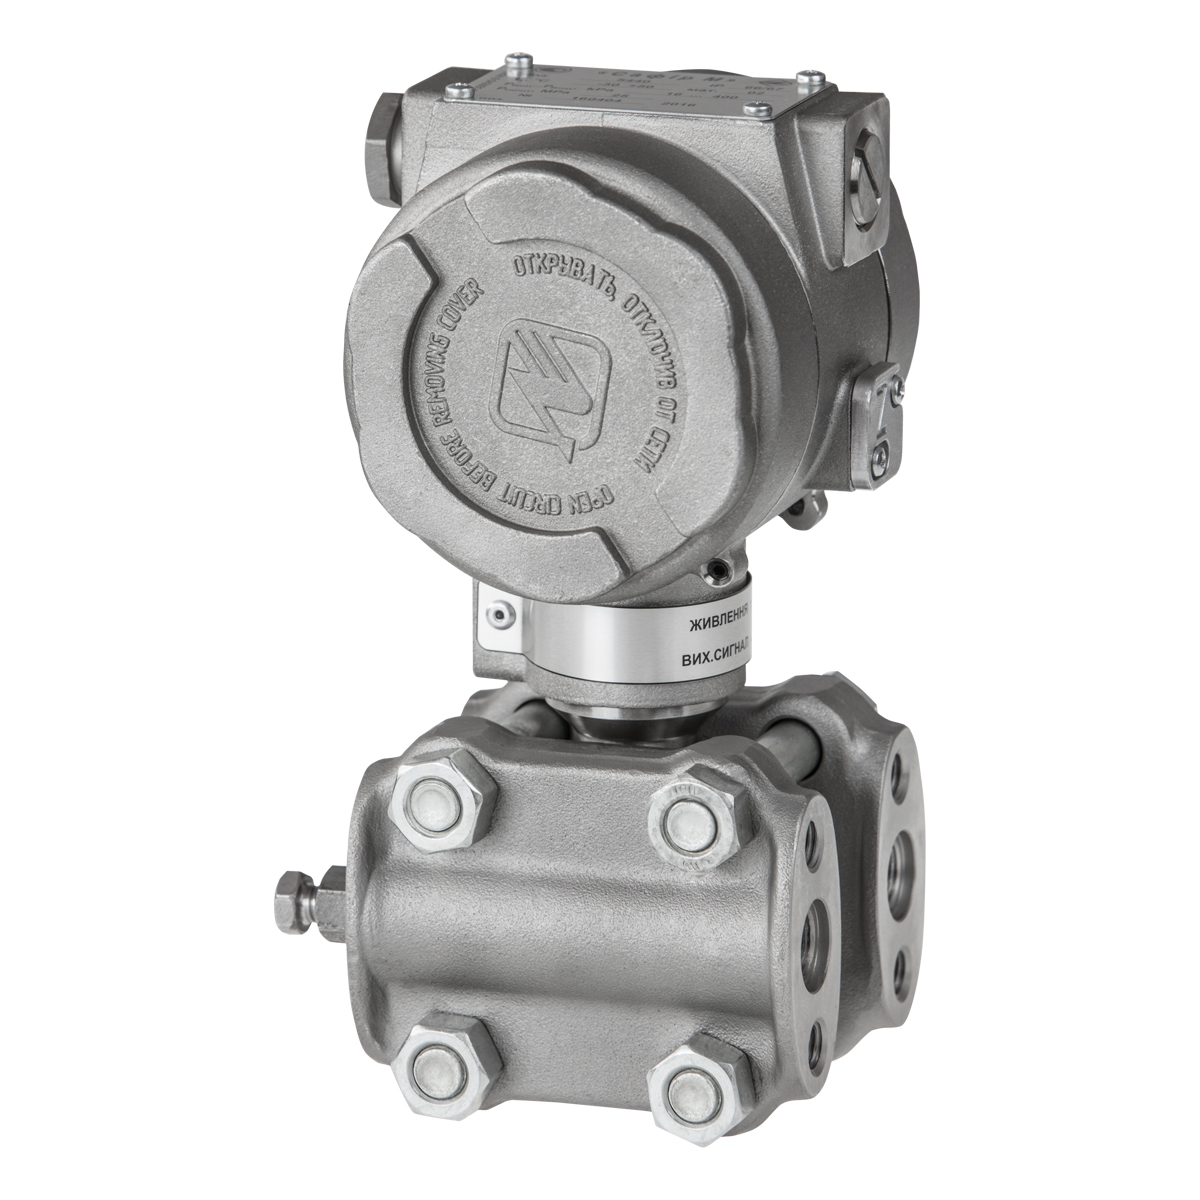 Analog LOCA Qualified Differential Pressure Transmitters Safir 2420, 2430, 2434, 2440, 2444, 2450, 2454 Ns